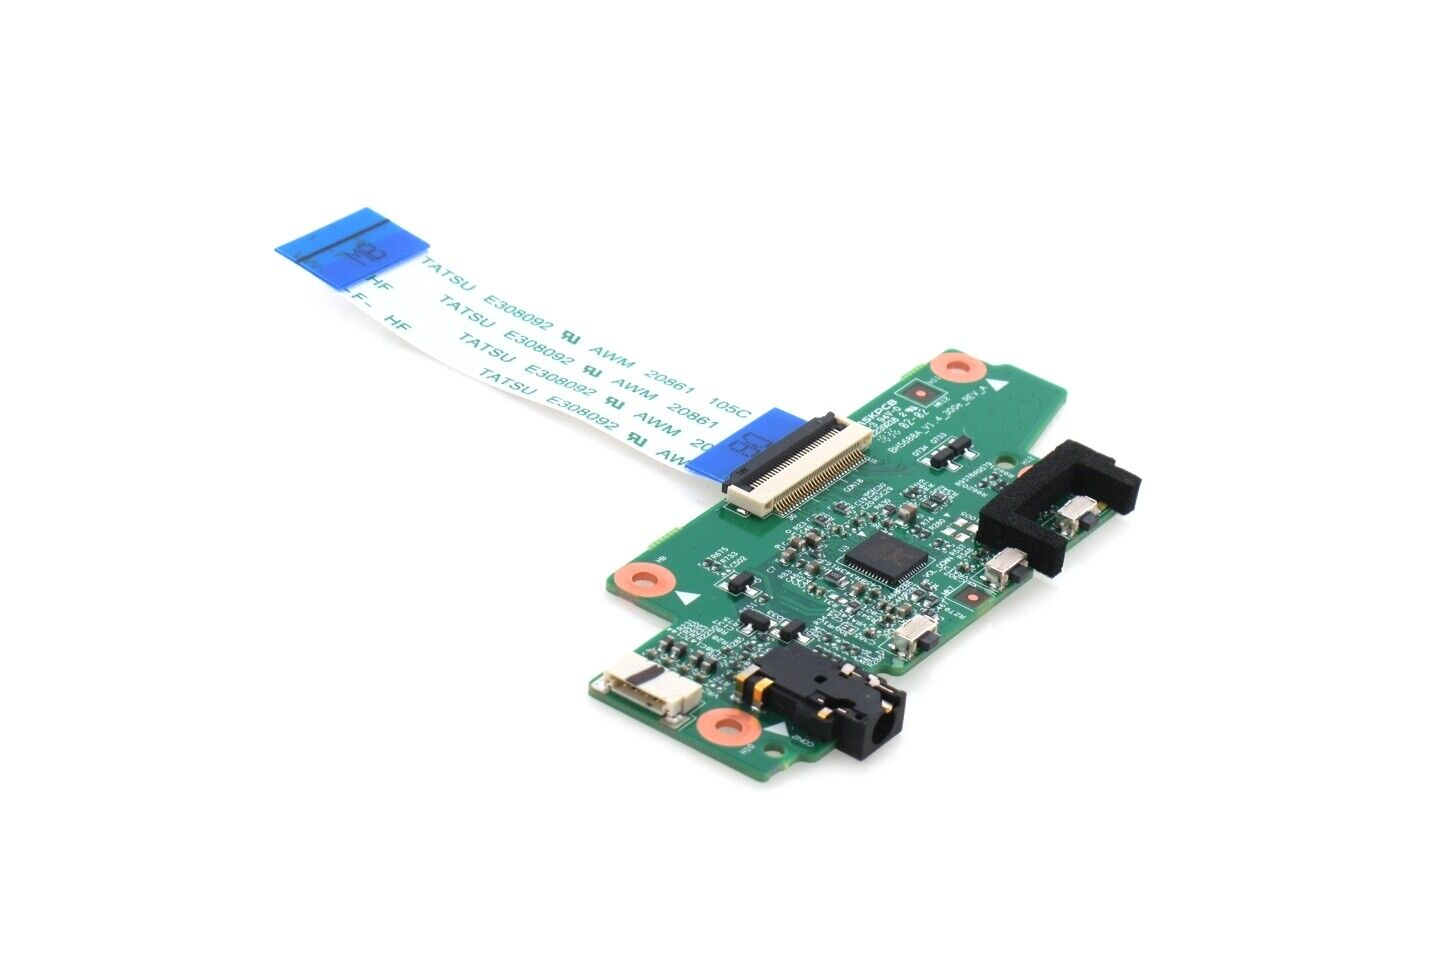 FMS Compatible with 5C10S73160 Replacement for Lenovo Display Cable 81HY0001US Chromebook C330